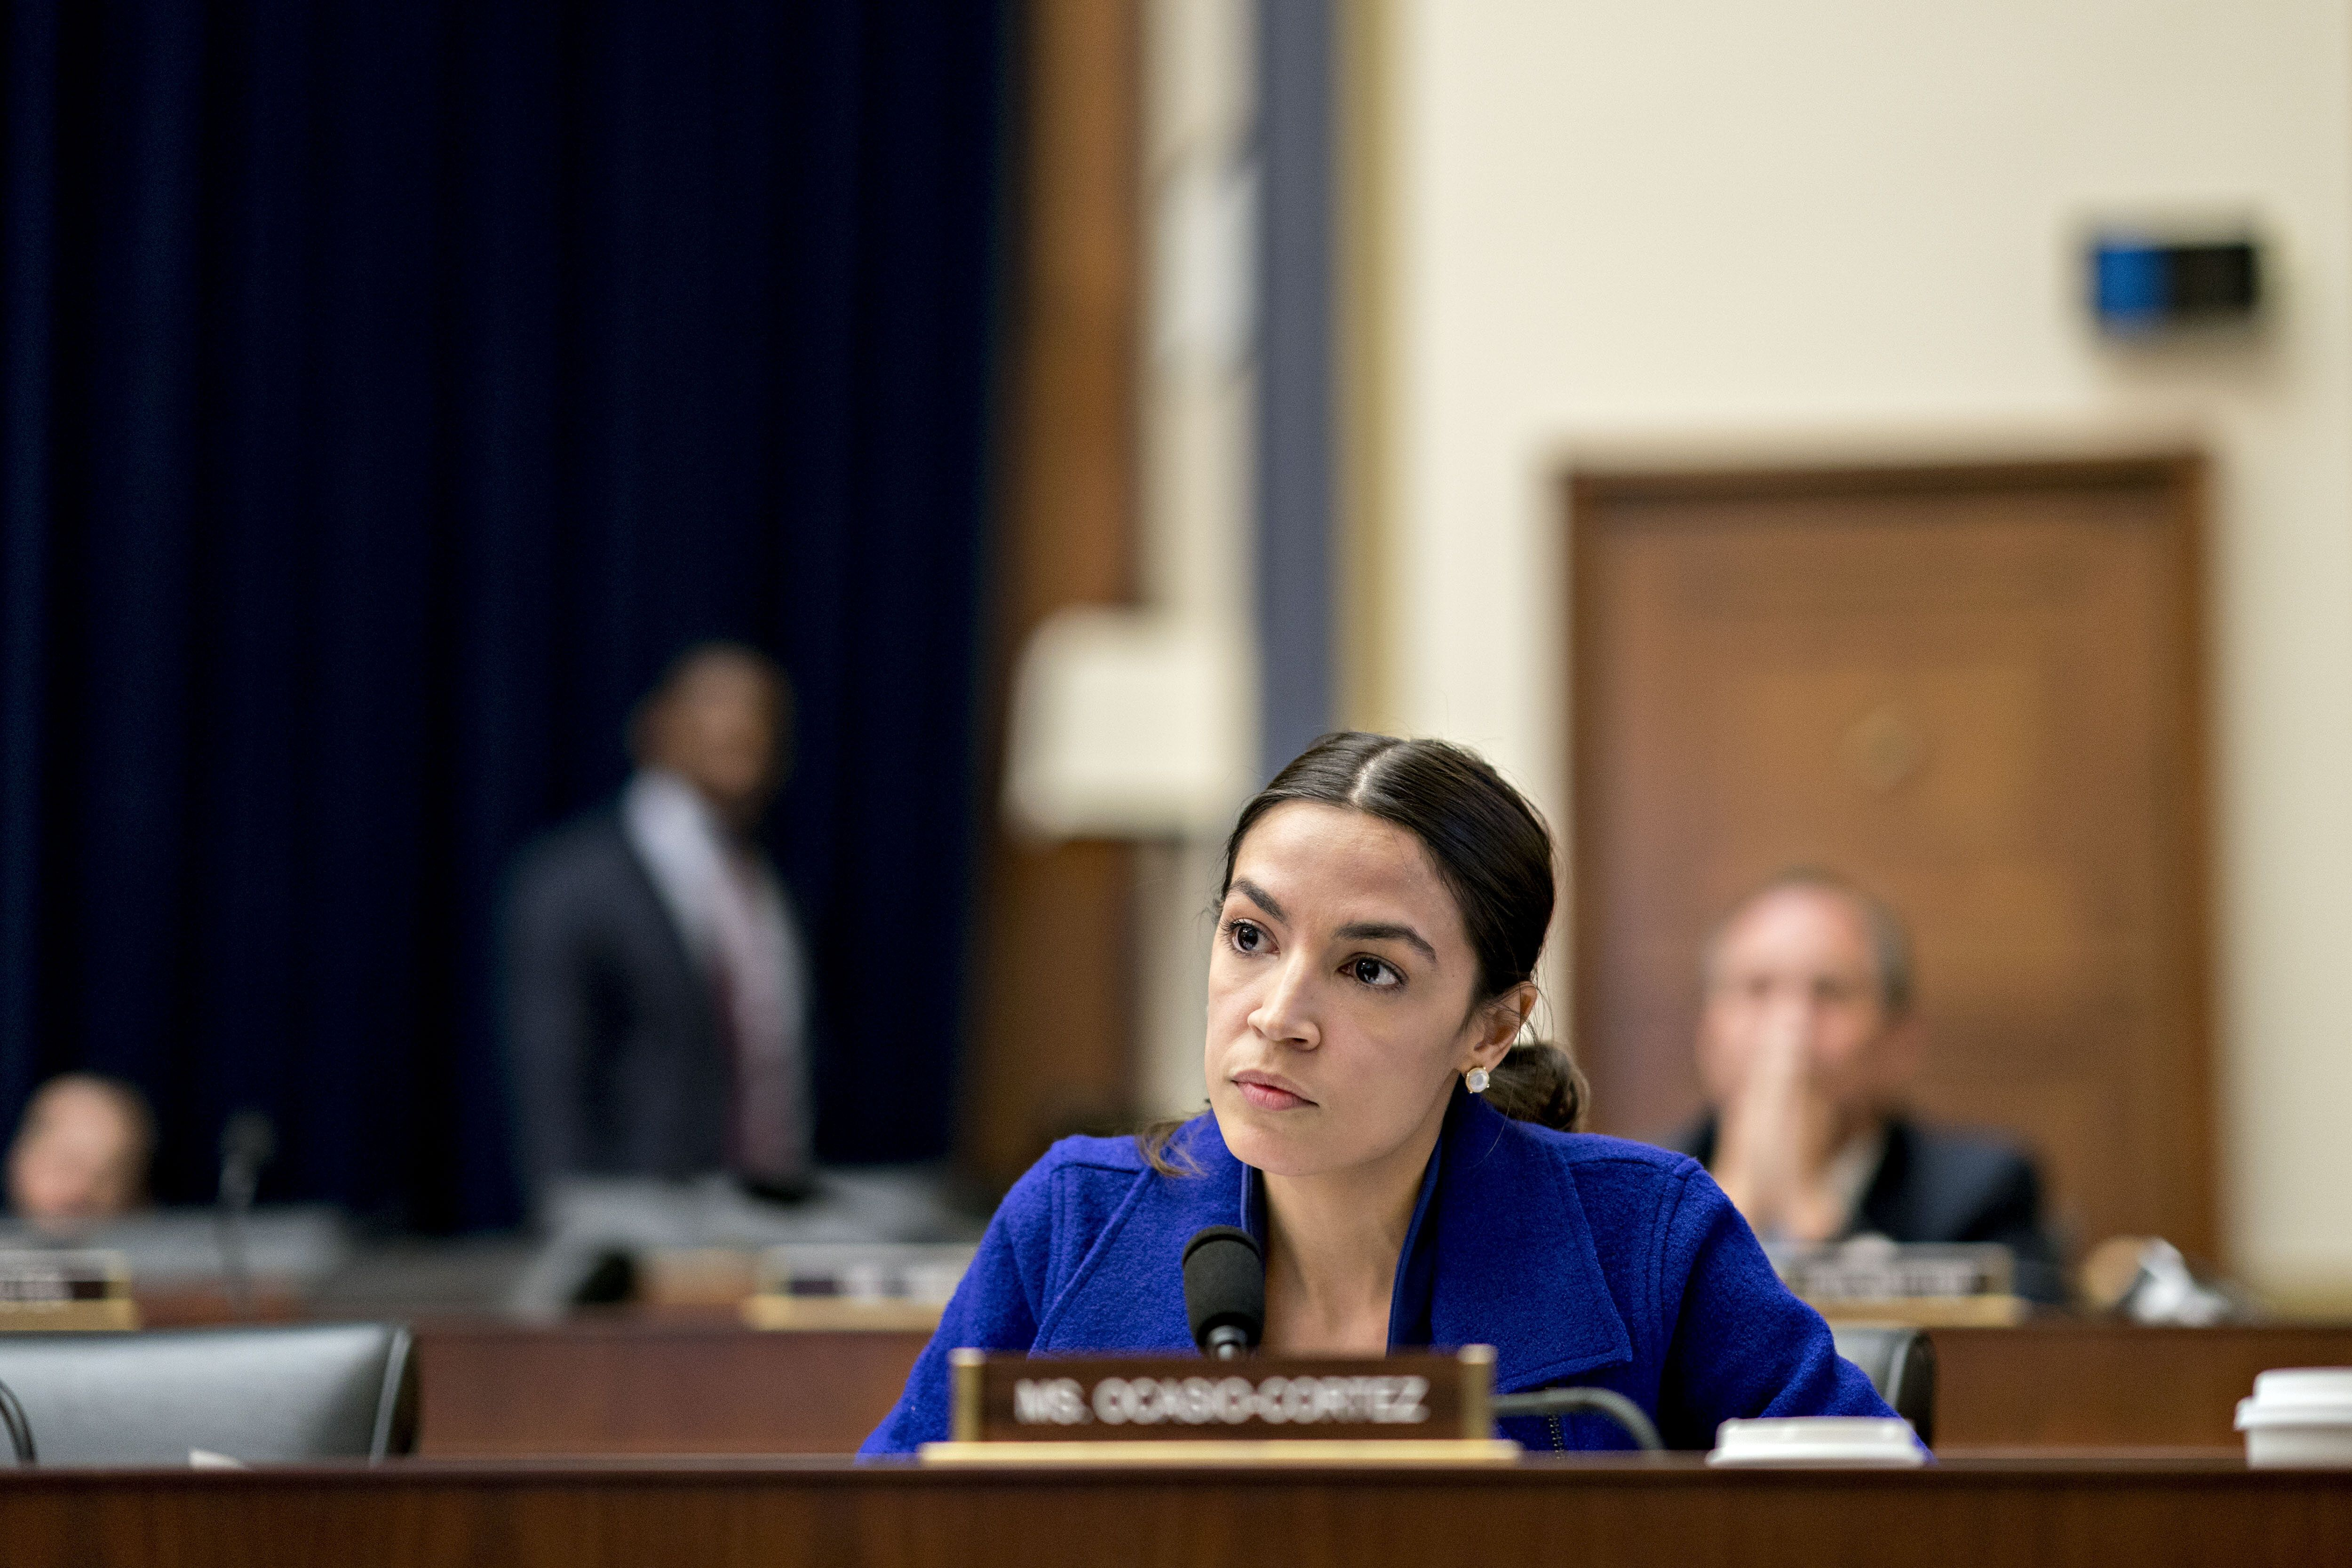 Representative Alexandria Ocasio-Cortez, a Democrat from New York, listens during a House Financial Services Committee hearing in Washington, D.C., U.S., on Wednesday, April 10, 2019. A decade after the financial crisis, the chiefs of the largest U.S. banks faced a grilling from lawmakers on everything from income inequality to their ties to politically controversial industries. Photographer: Andrew Harrer/Bloomberg via Getty Images